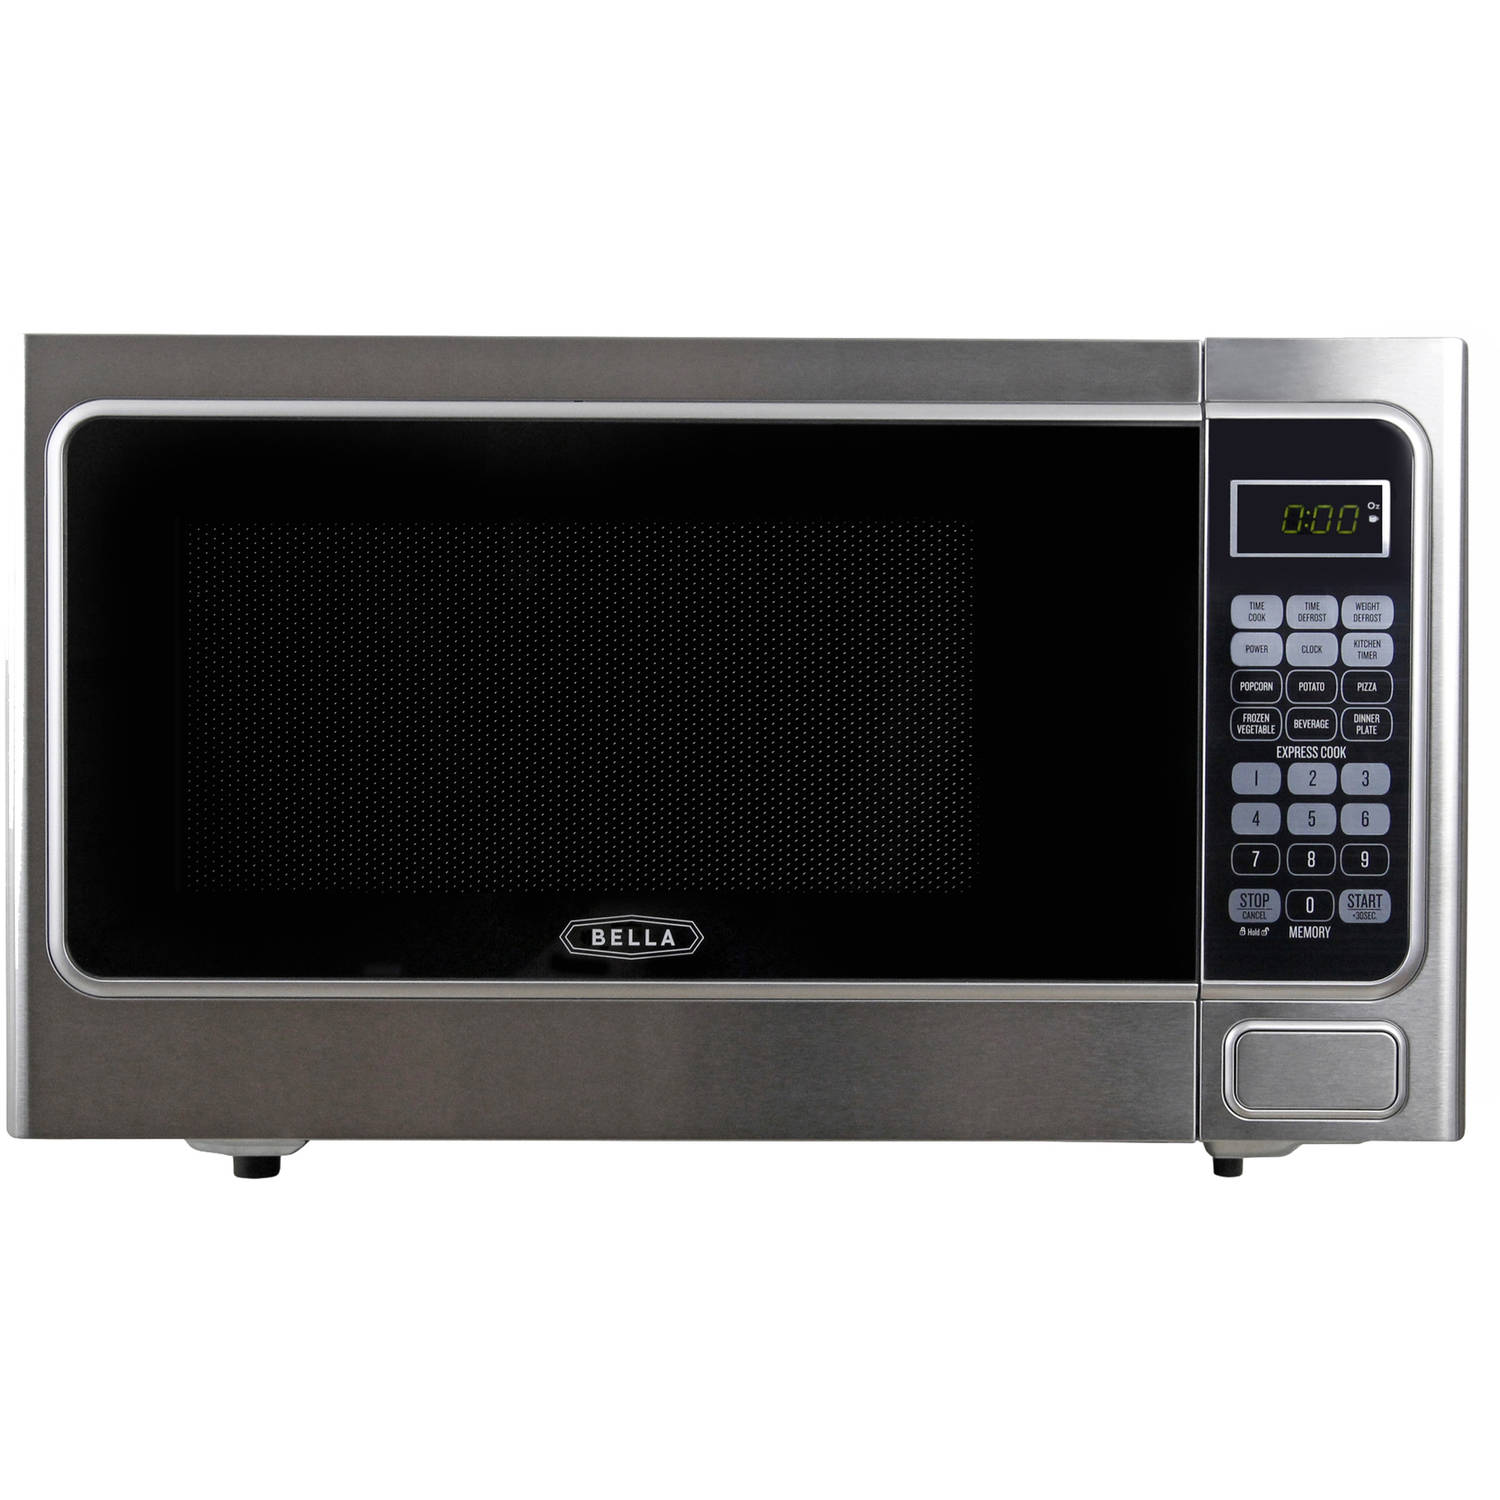 Bella 1.1 Cubic Foot 1000 Watt Microwave Oven in Stainless Steel and Black